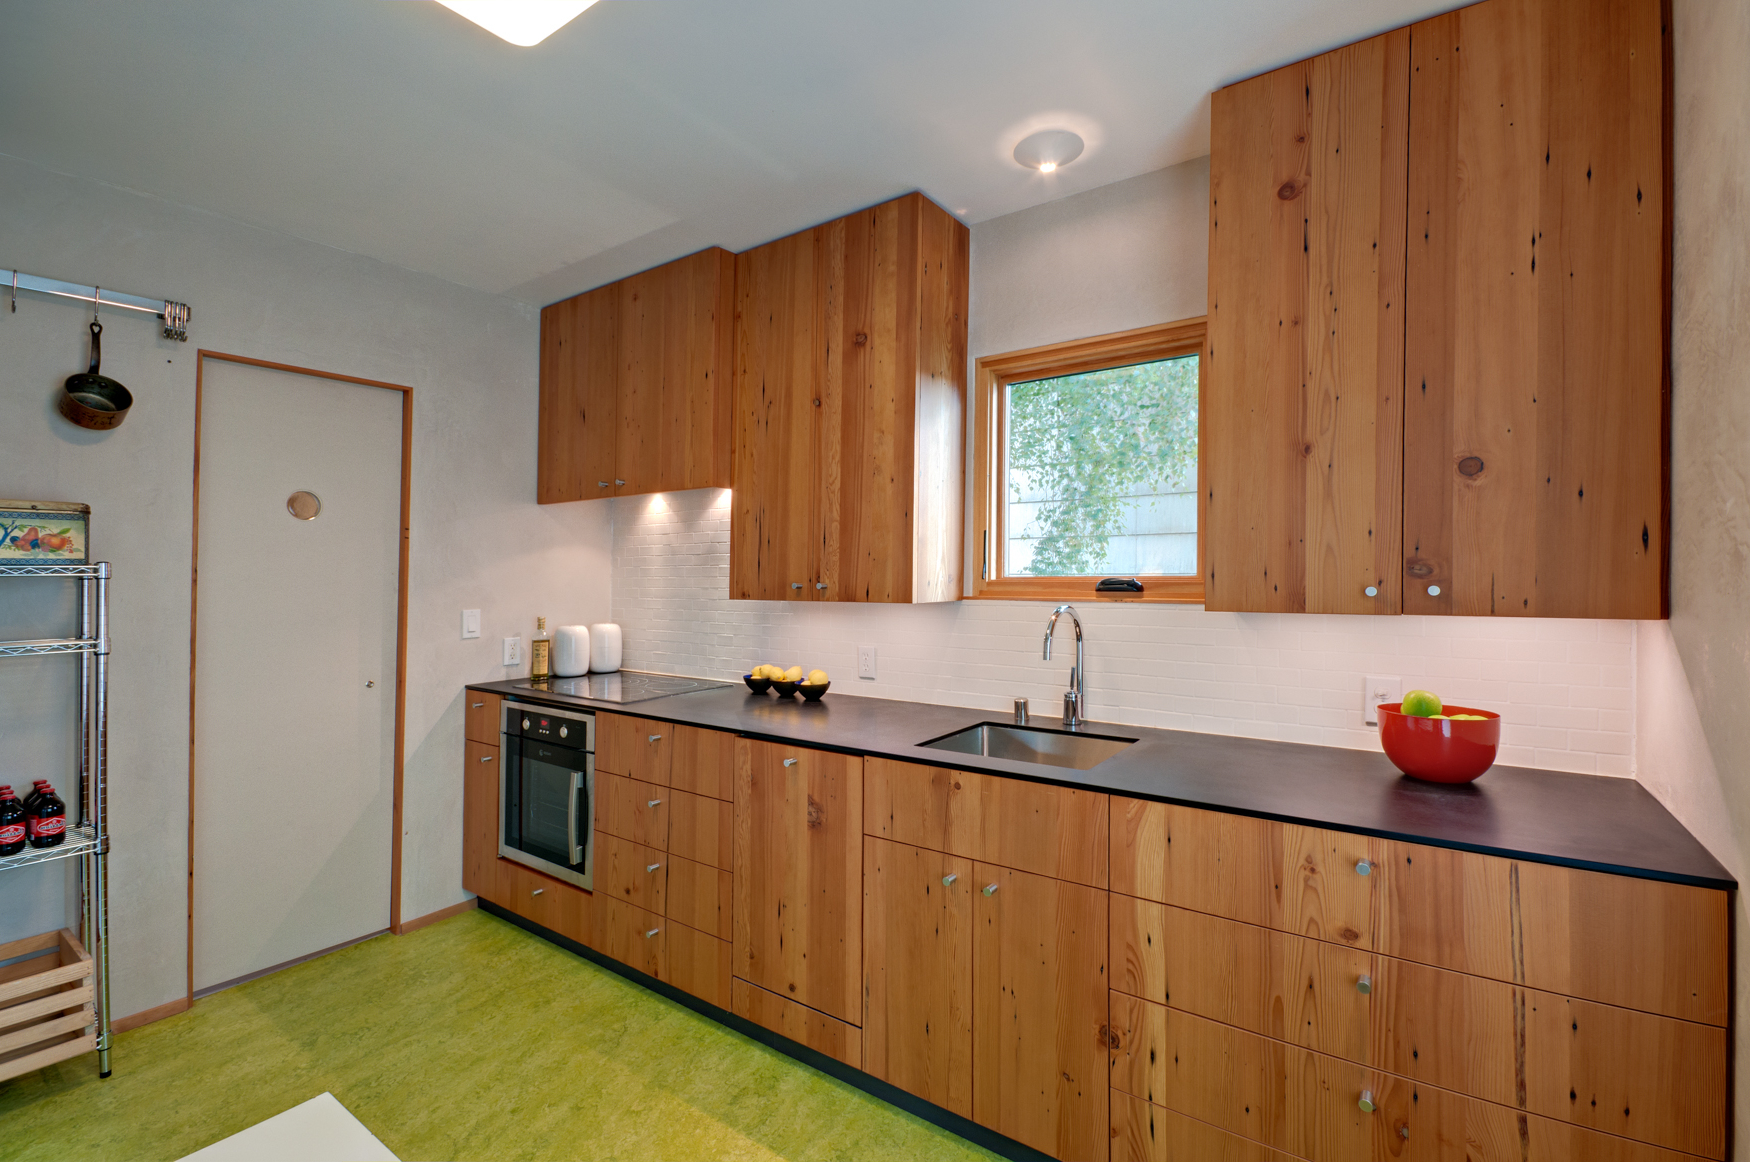 Kitchen A Resourceful Kitchen Wooden Cabinet Sets Kitchen Design Home Programs Layout U Shaped Designs Room Software House Plan Ikea Designer Beautiful Kitchens Tool Island (Image 2 of 38)